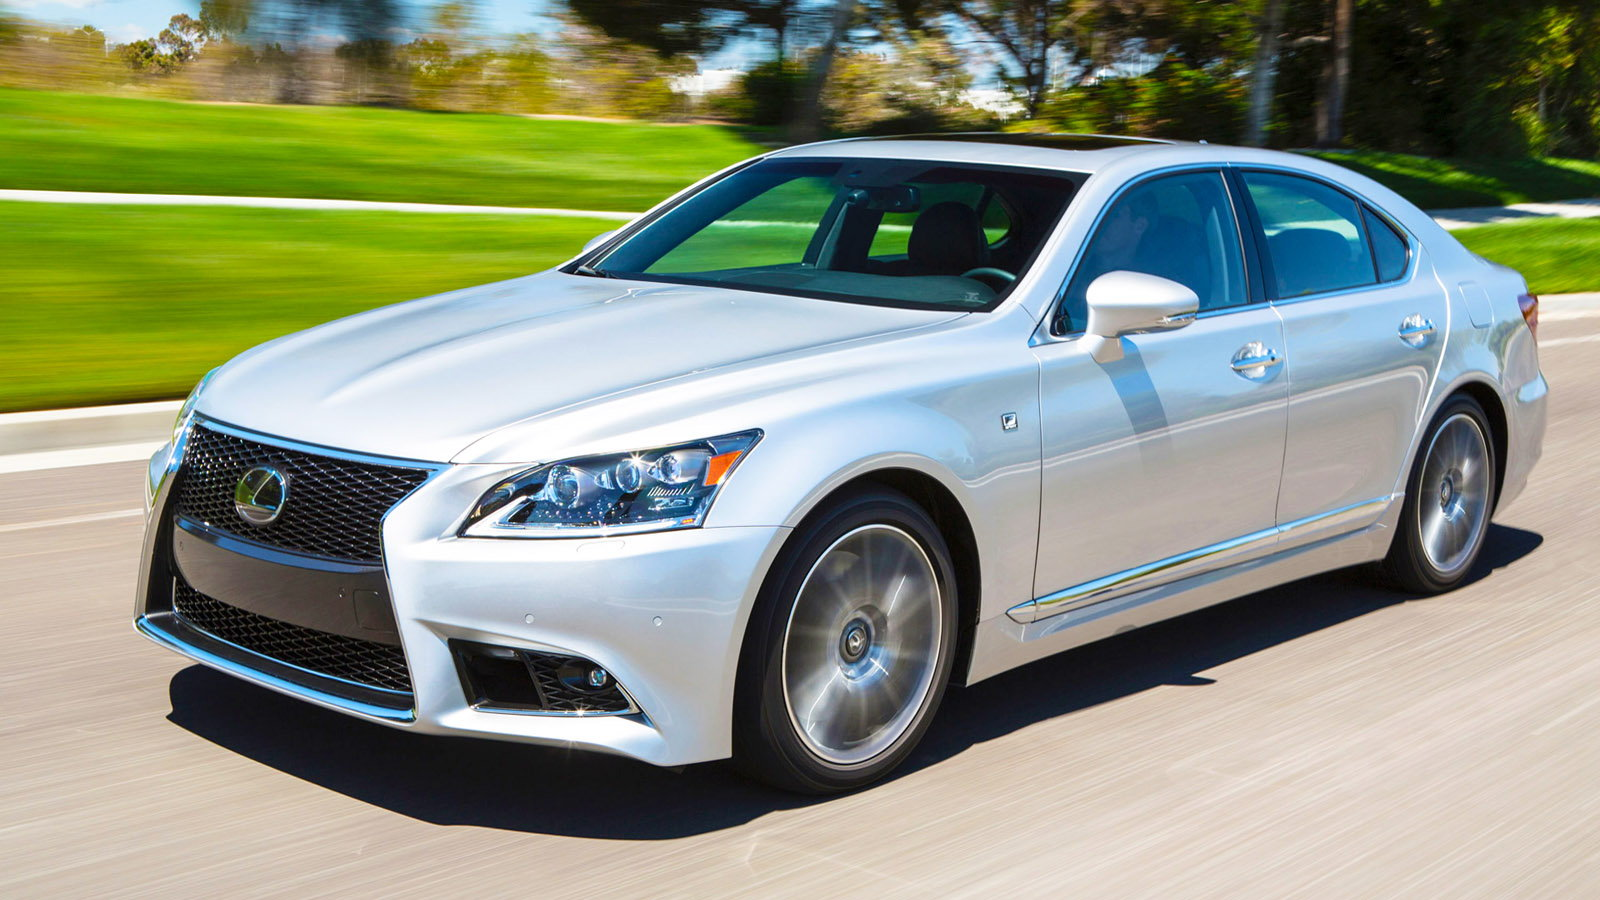 Top 7 Fastest Cars From Lexus - Clublexus